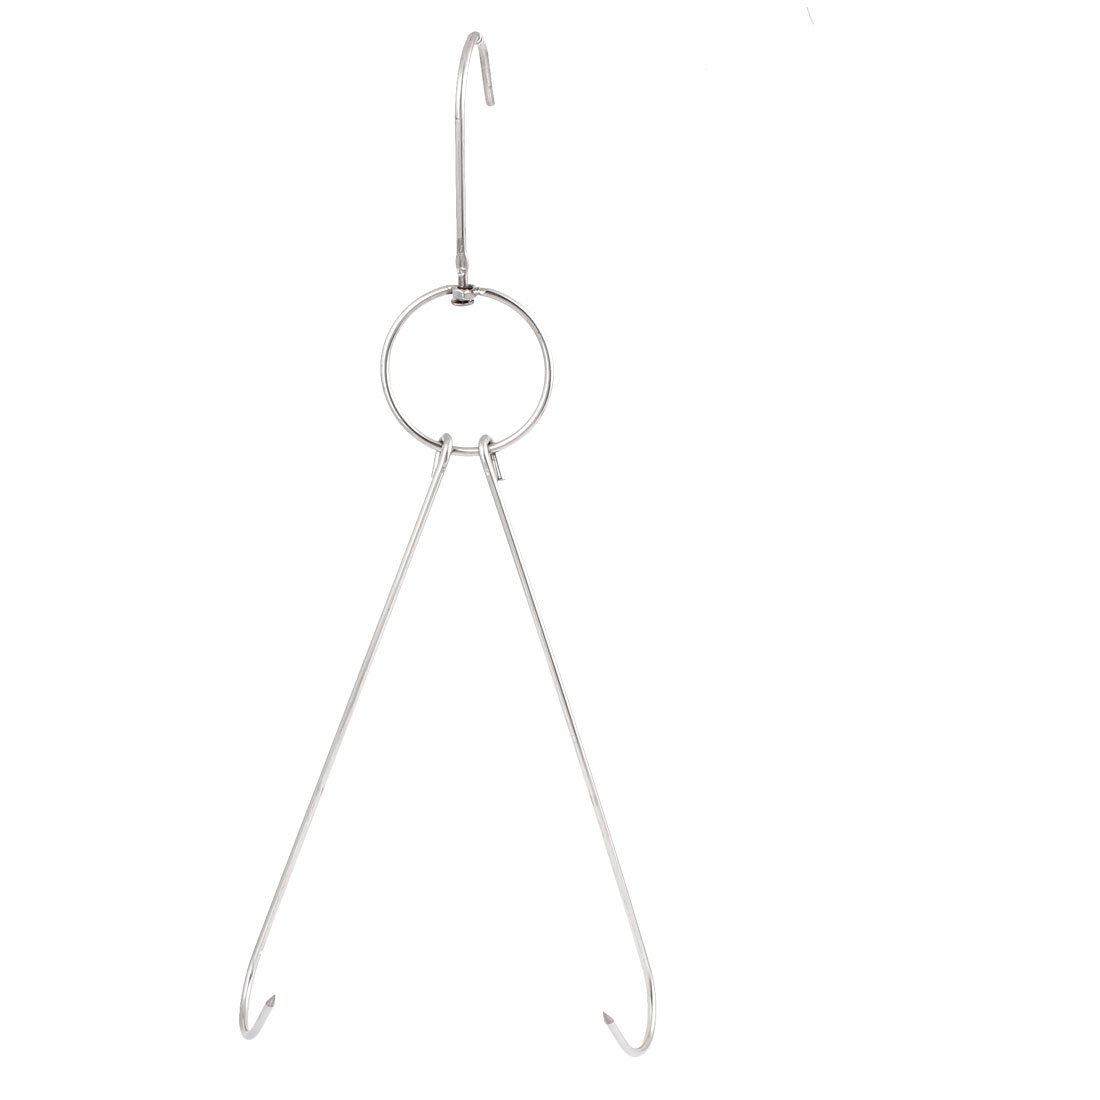 Silver Tone Metal Double Hooks Kitchenware Hanging Hook Hanger